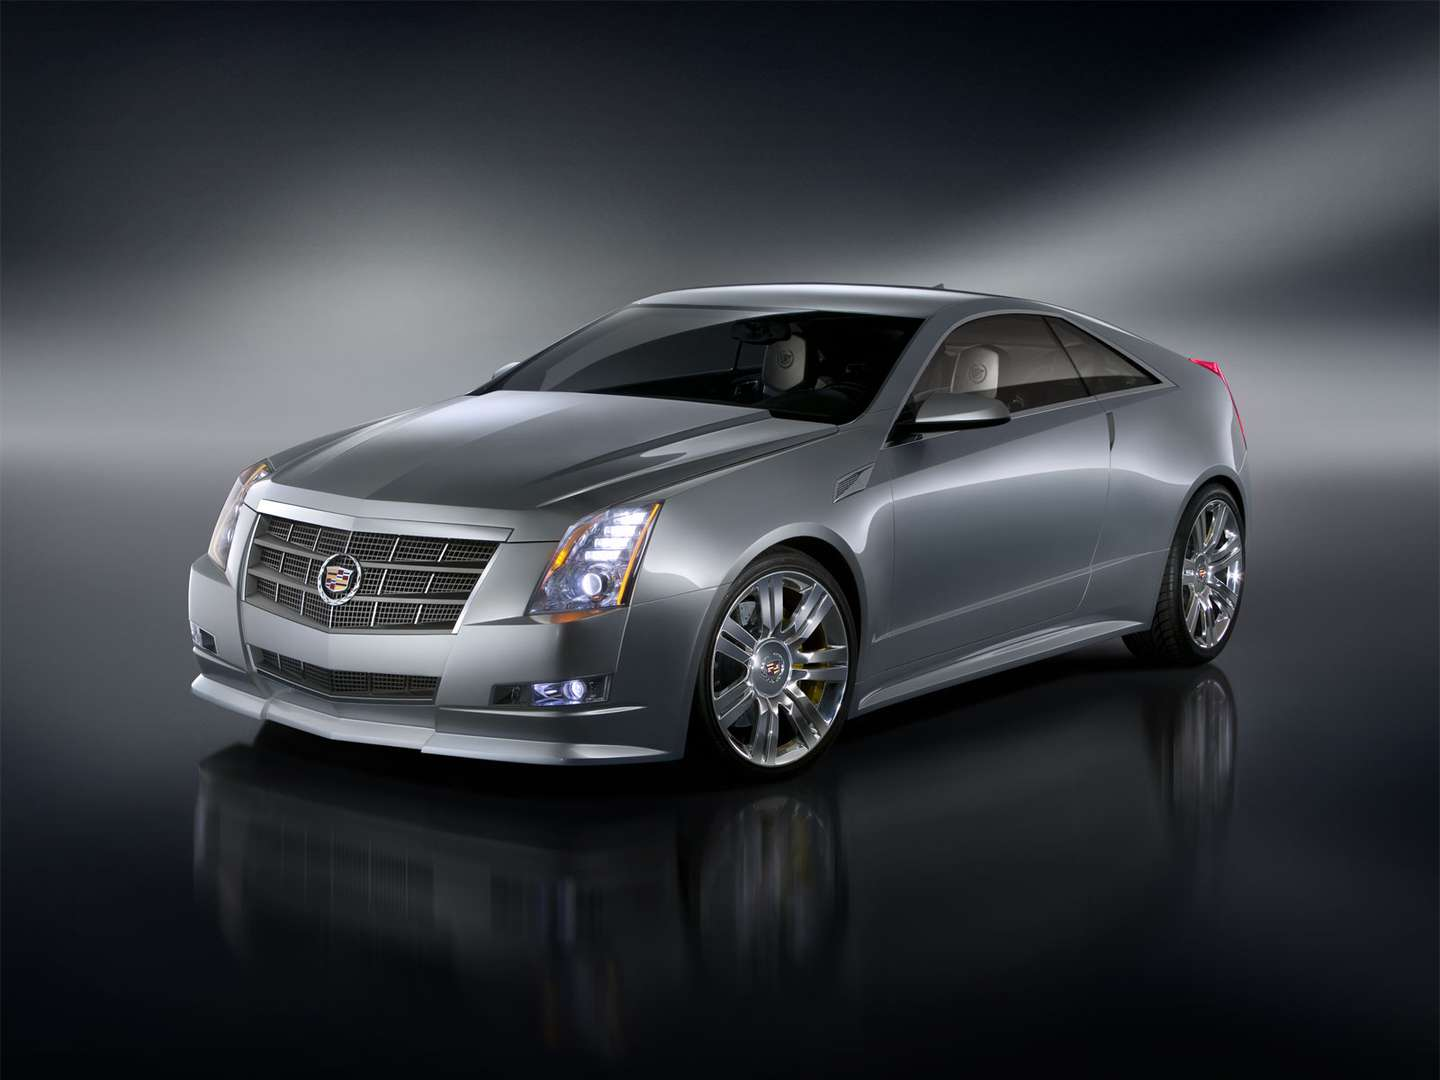 Cadillac CTS Coupe #9850640